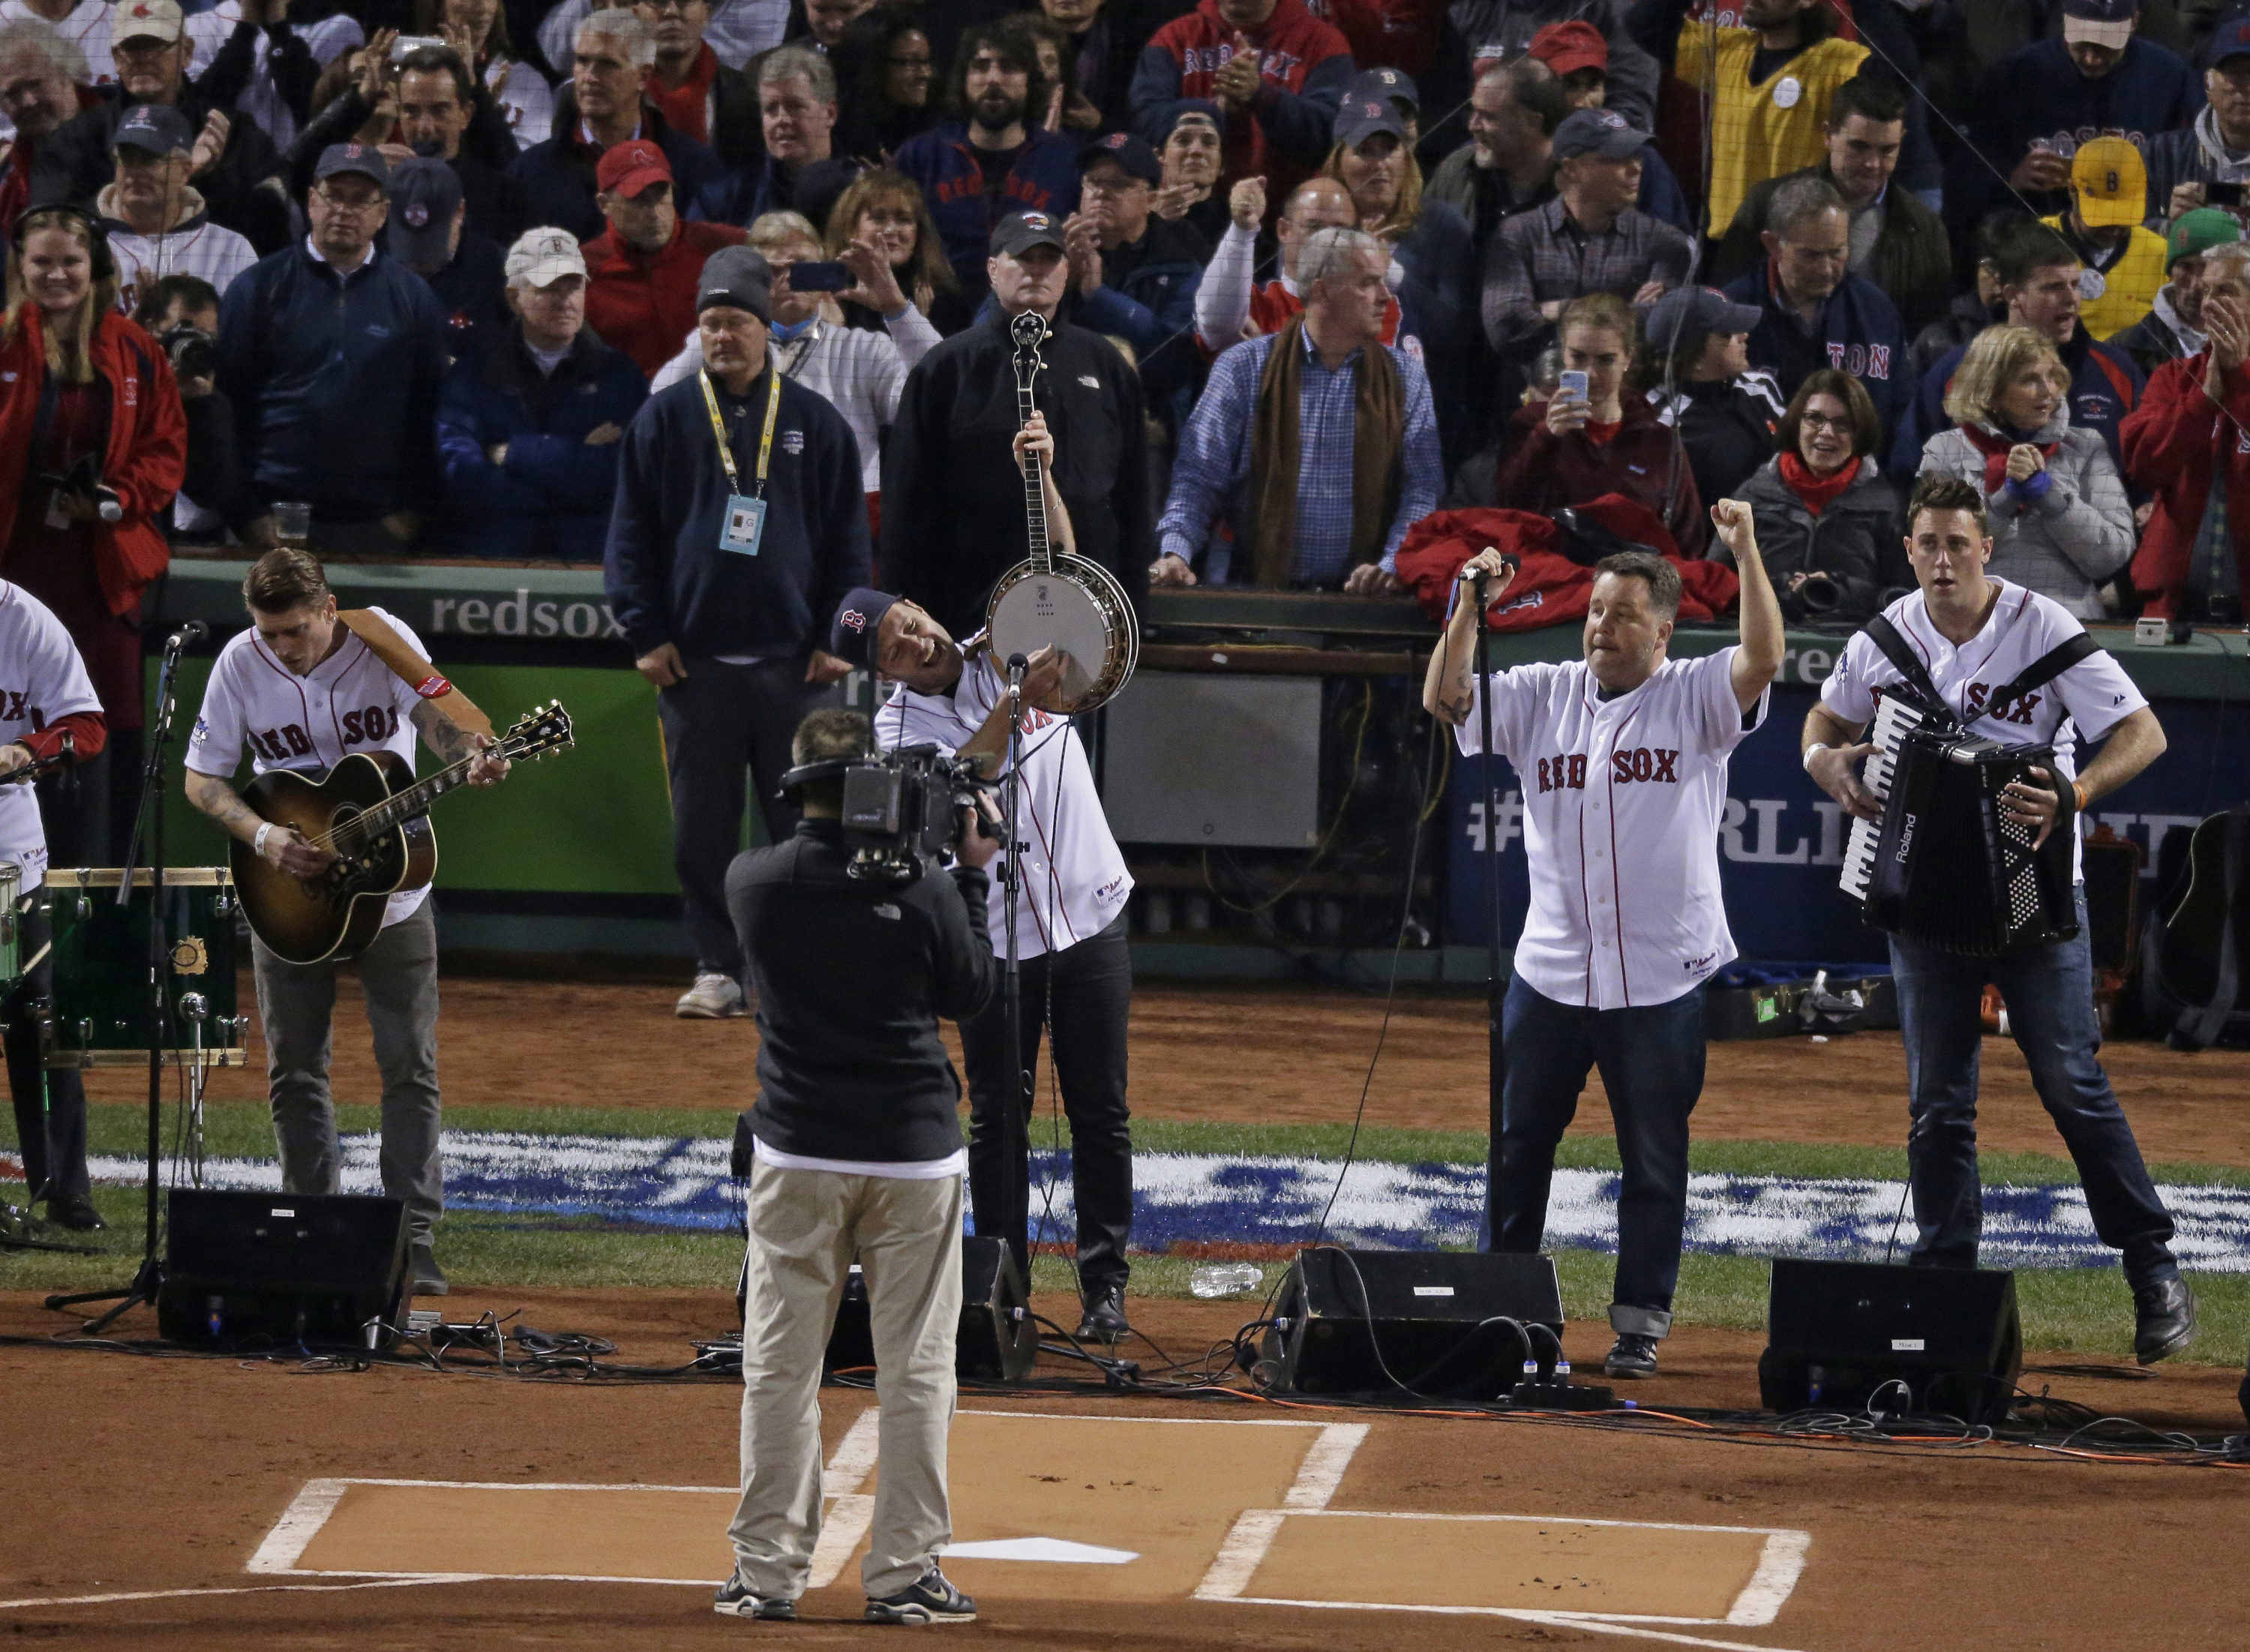 Dropkick Murphys perform before Game 6 of baseball's World Series between the Boston Red Sox and the St. Louis Cardinals Wednesday, Oct. 30, 2013, in Boston. (Charlie Riedel/AP)